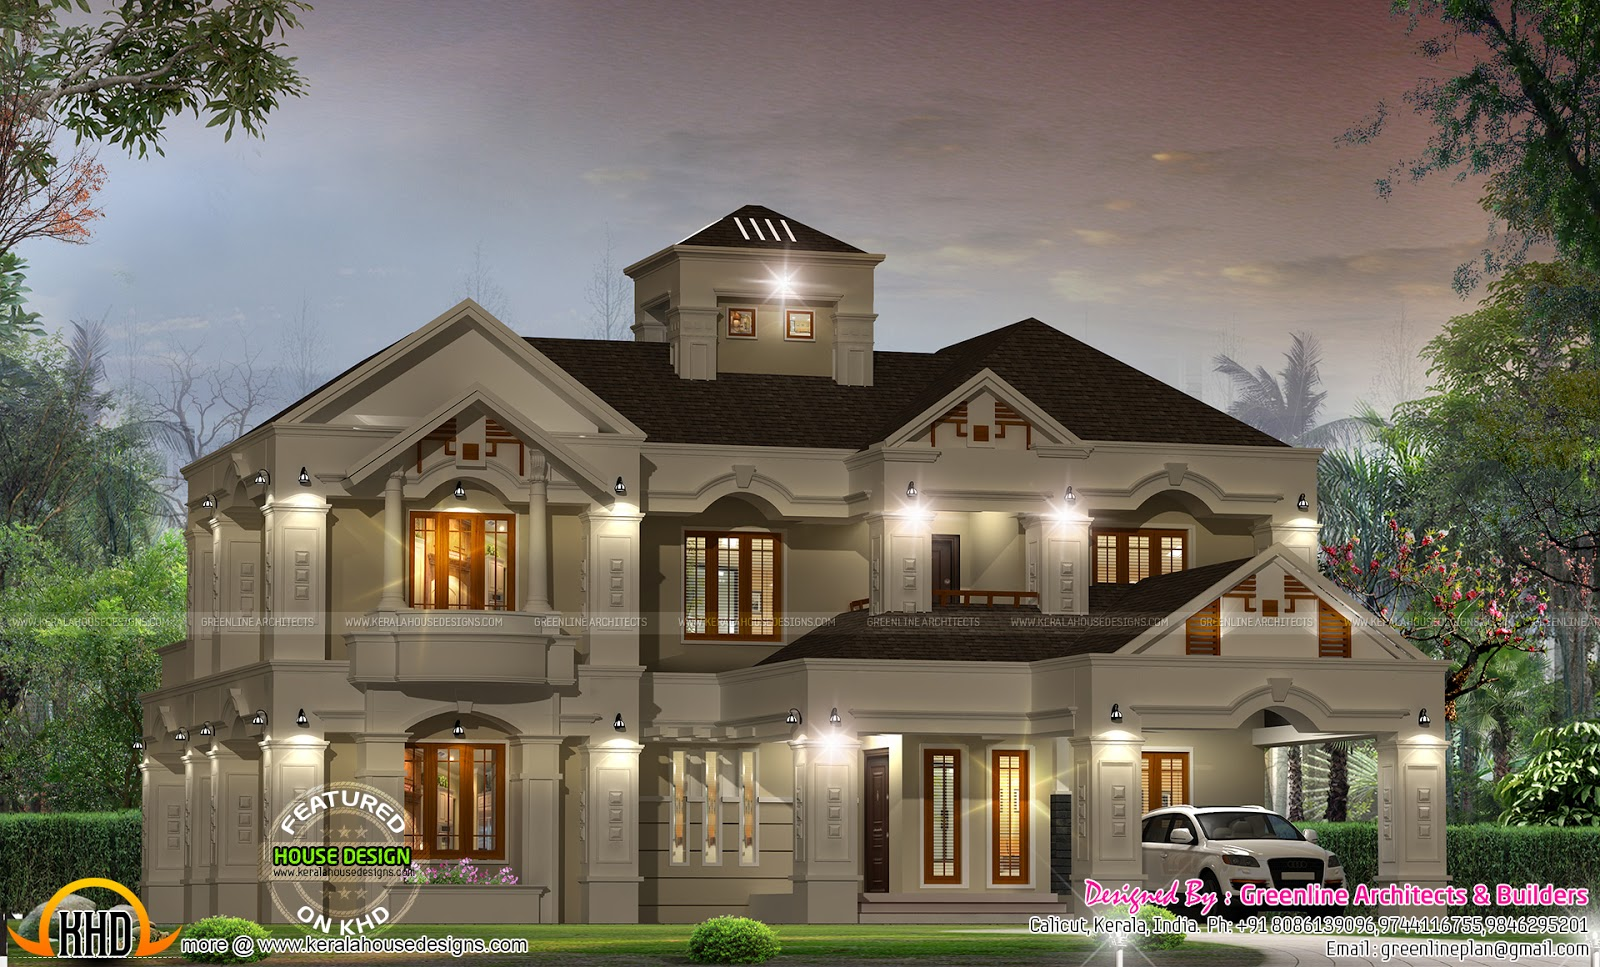 Luxury villa design in kerala kerala home design and for Villa house plans